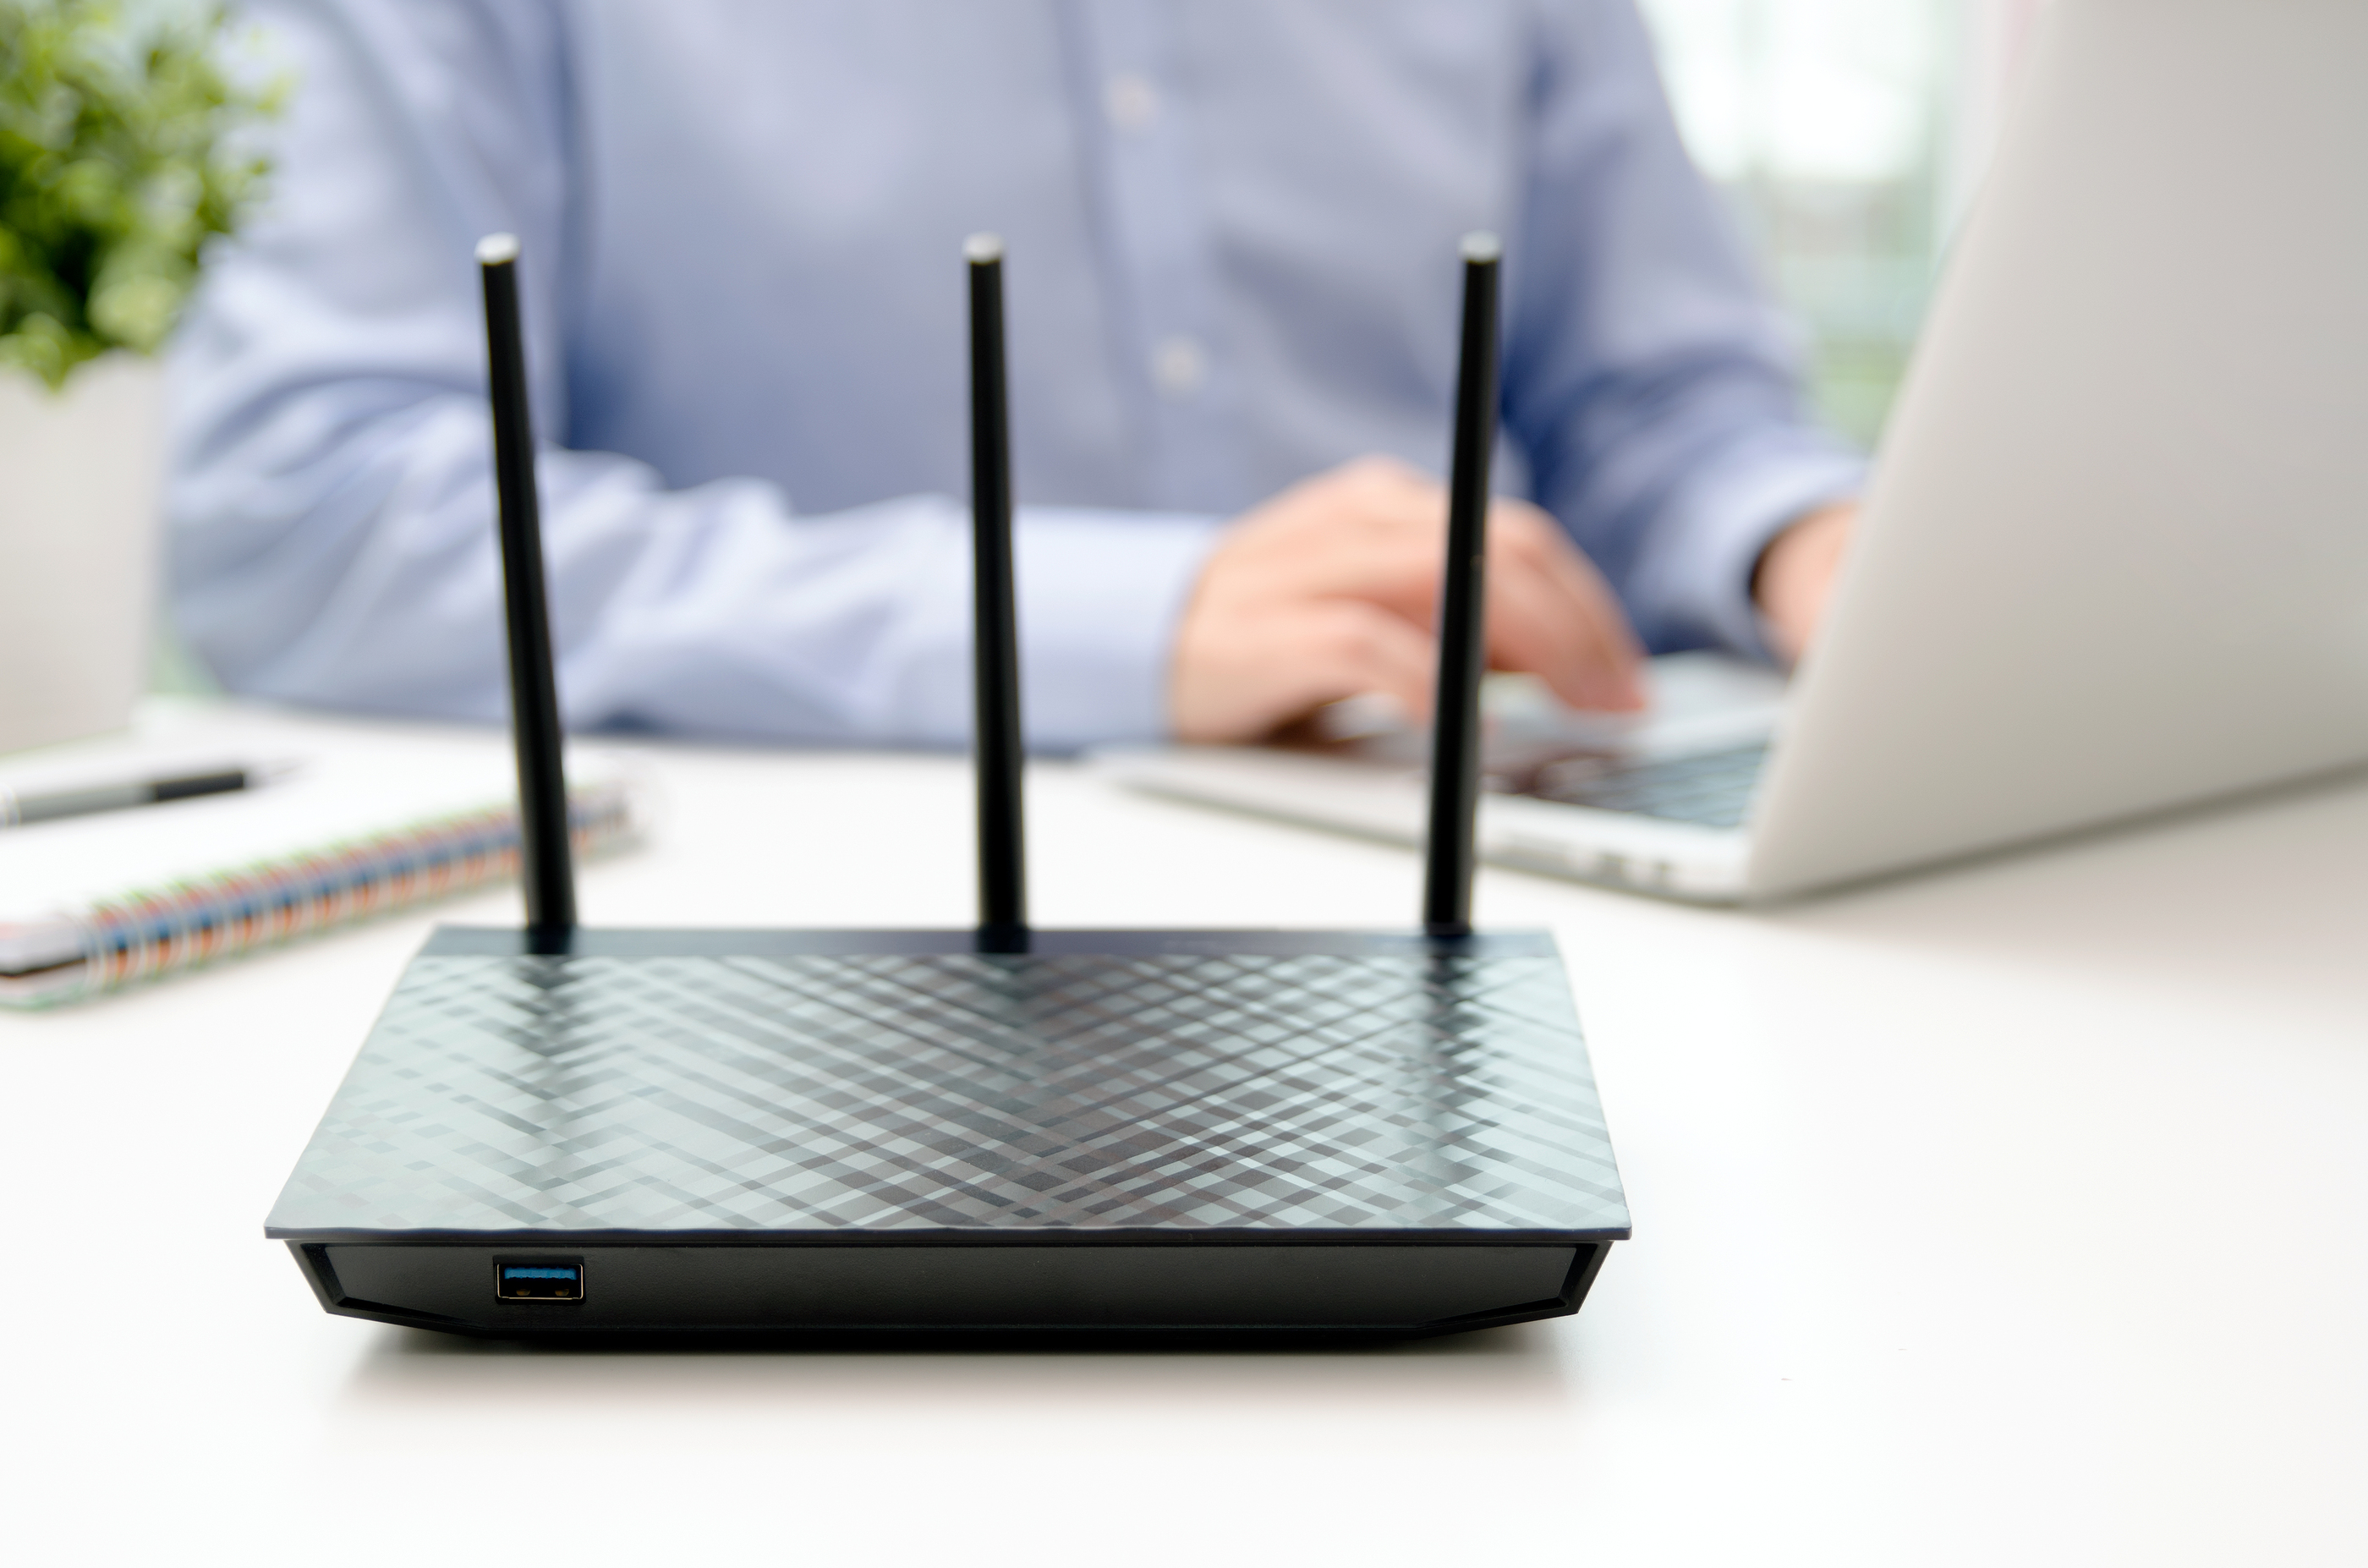 Tips for Securing a Home Router While Working from Home Due to COVID-19